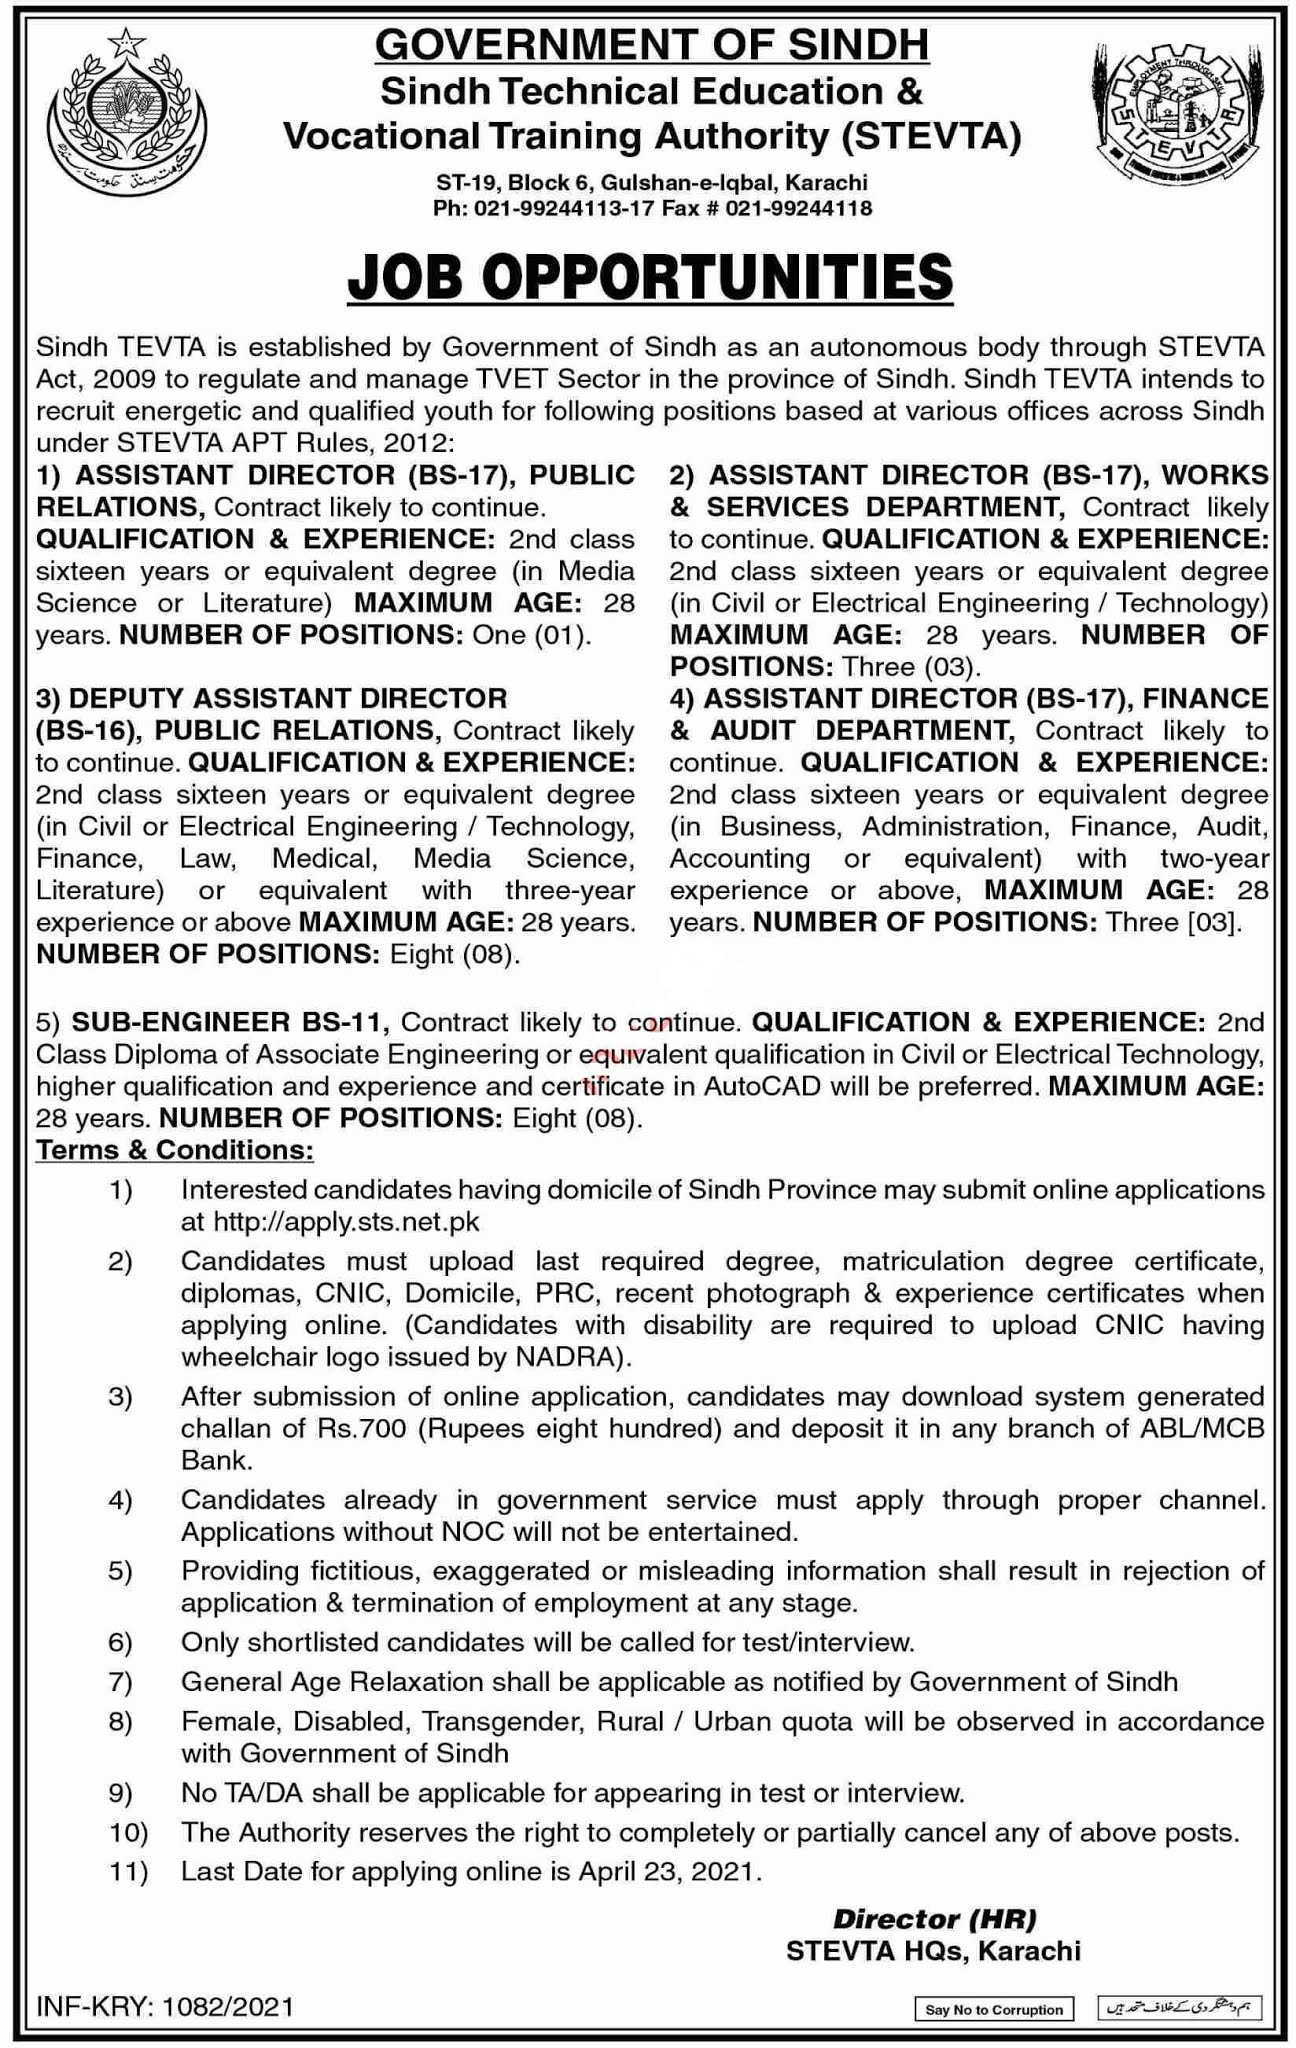 Sindh Technical Education and Vocational Training Authority STEVTA Jobs 2021 For Finance, Assistant Director Audit, Sub Engineer, Associate Engineer & more